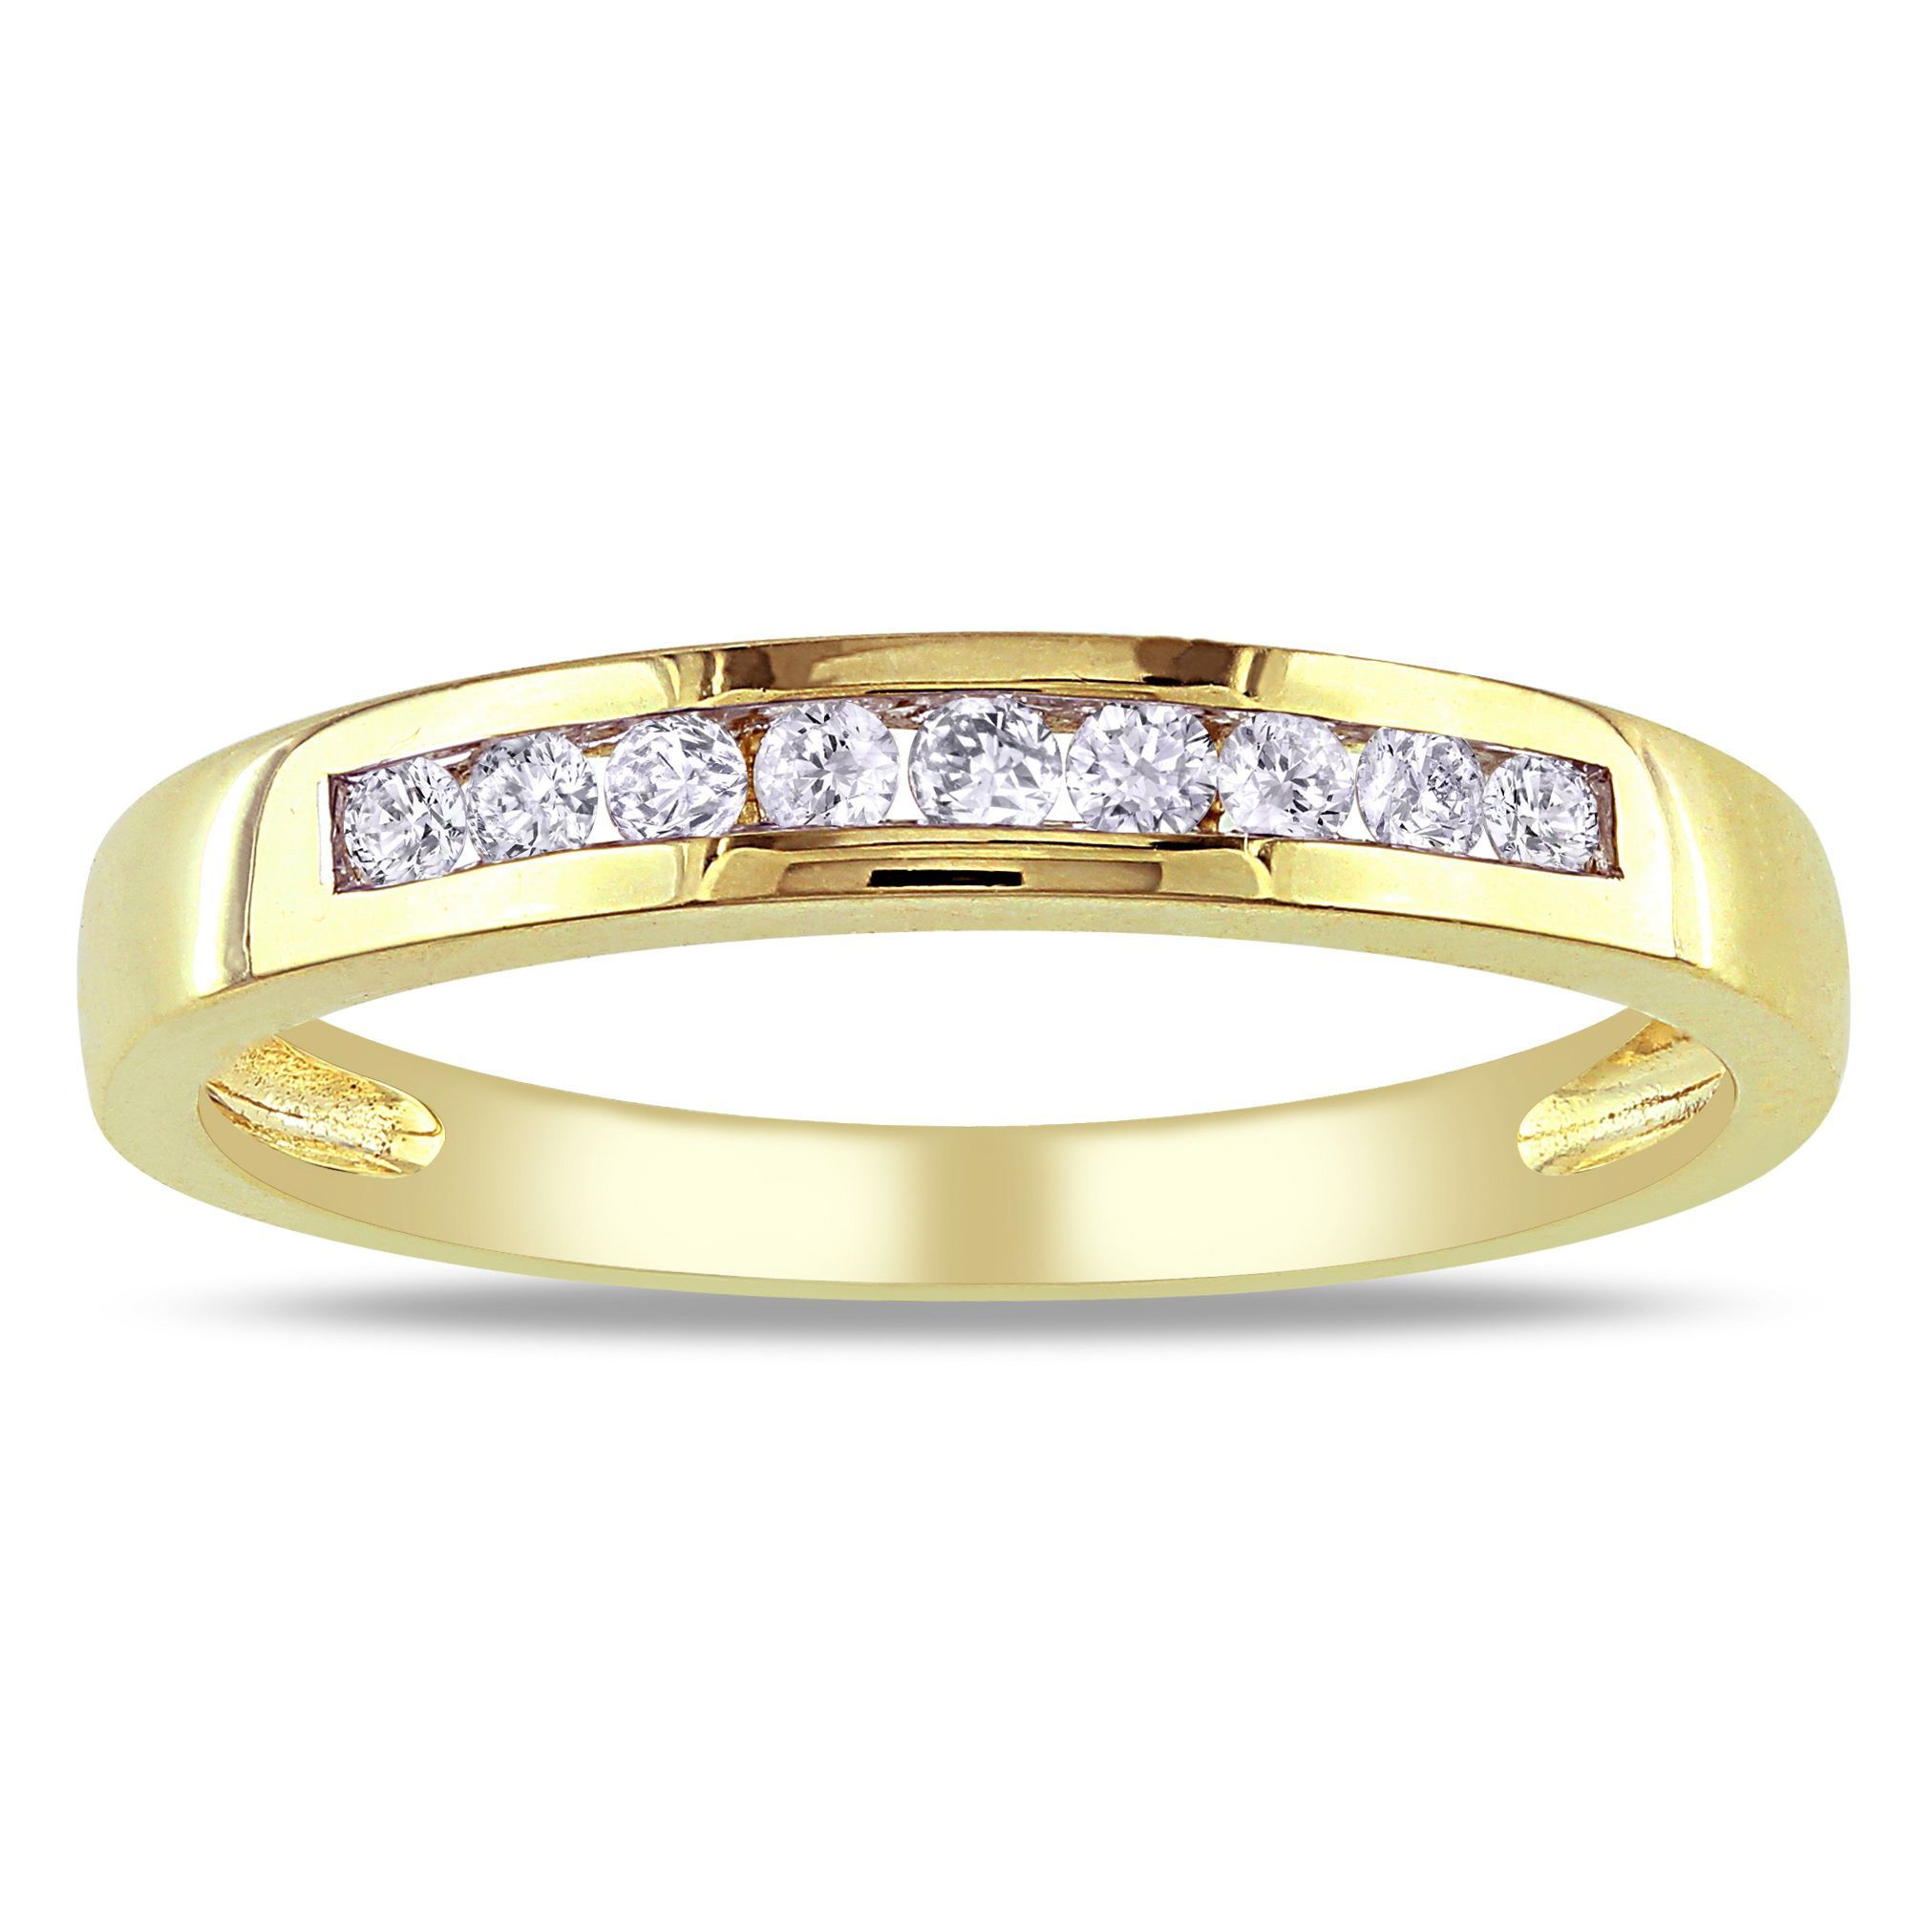 il diamond fullxfull baguette gold emerald stackable listing yellow white band rose deco art single wedding bands promise anniversary